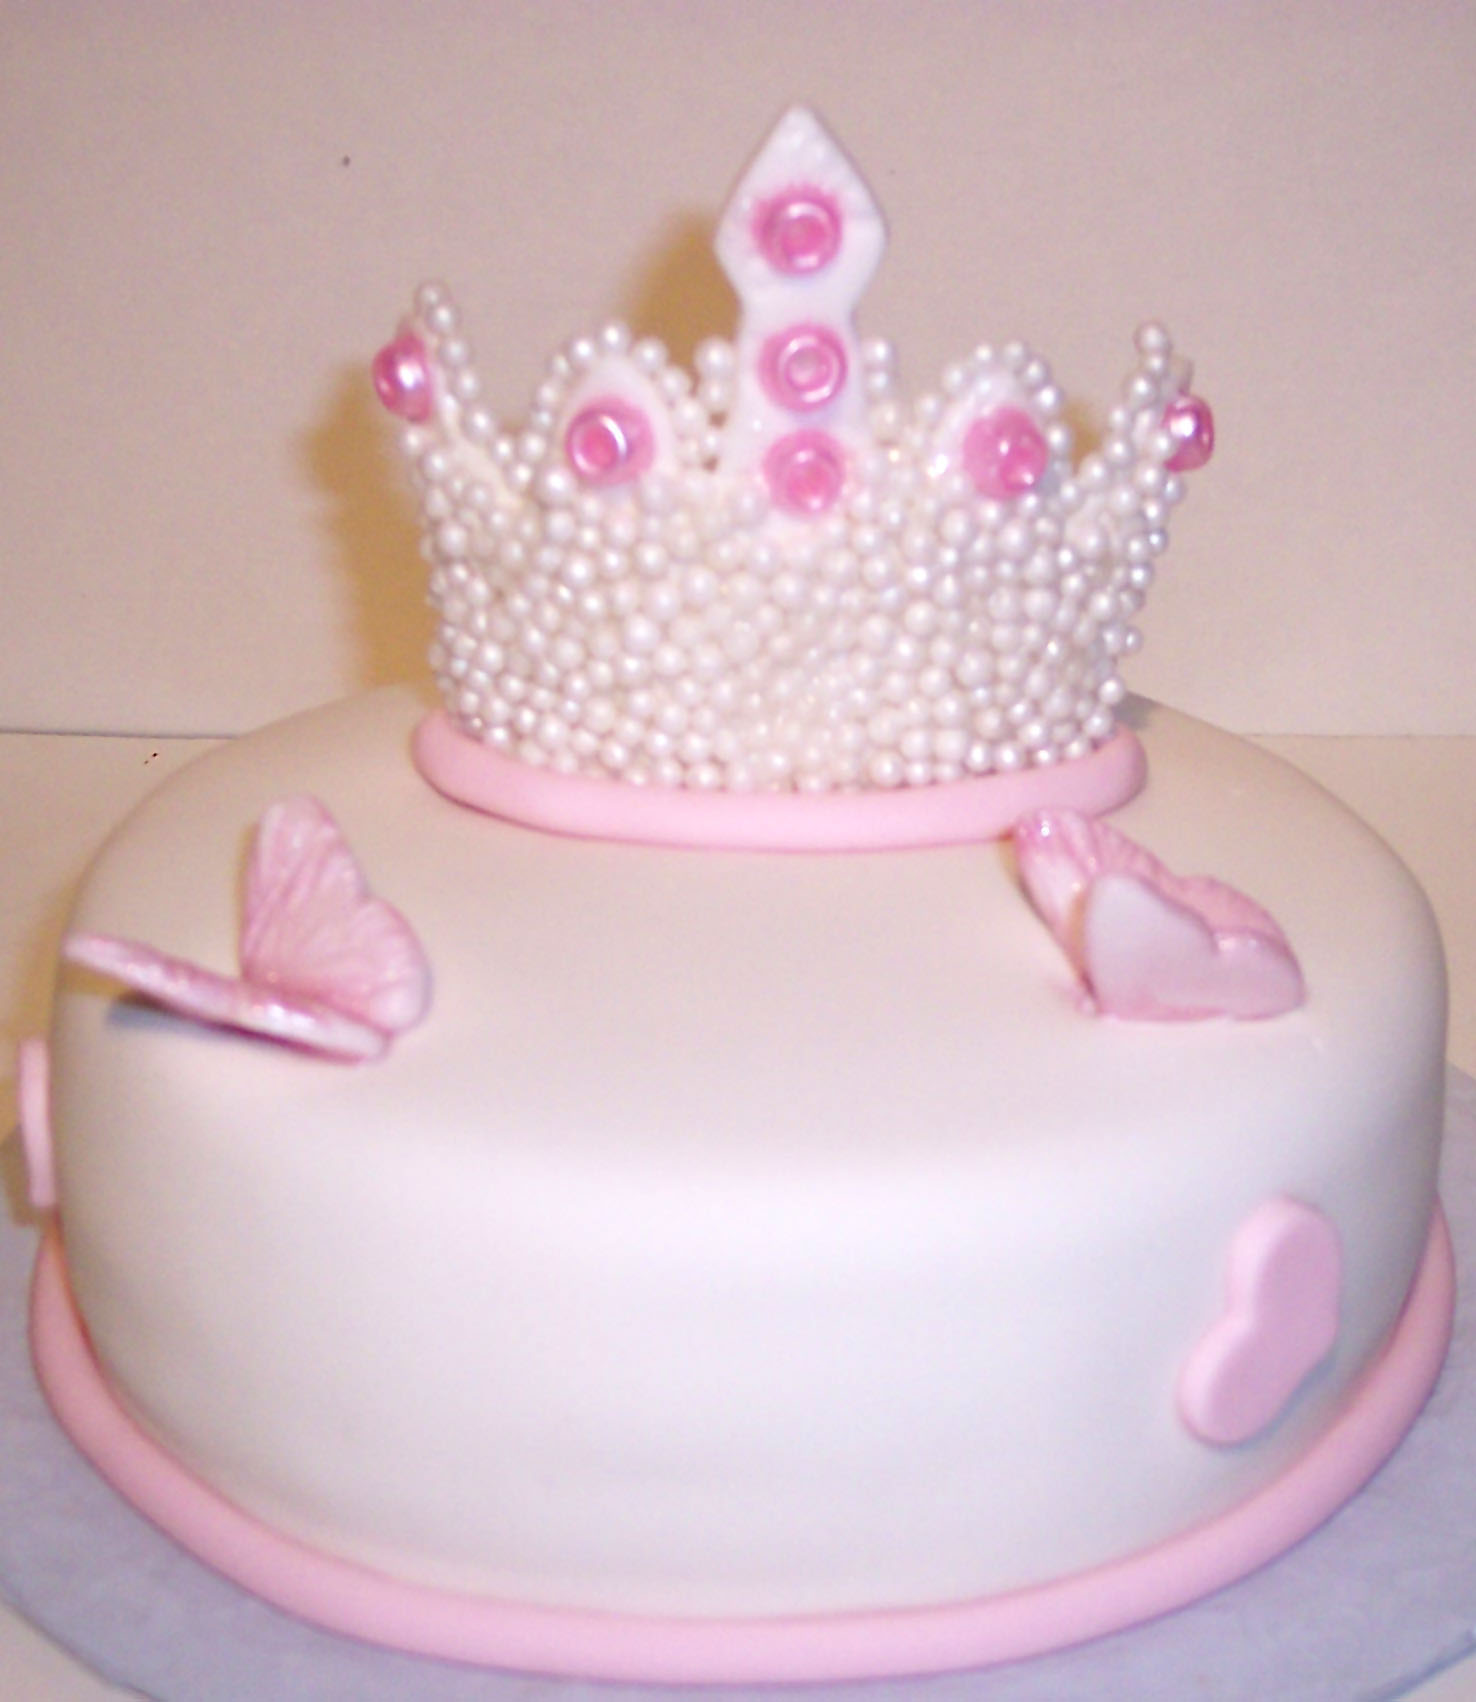 Princess Cake for Senea The Sugar Lane